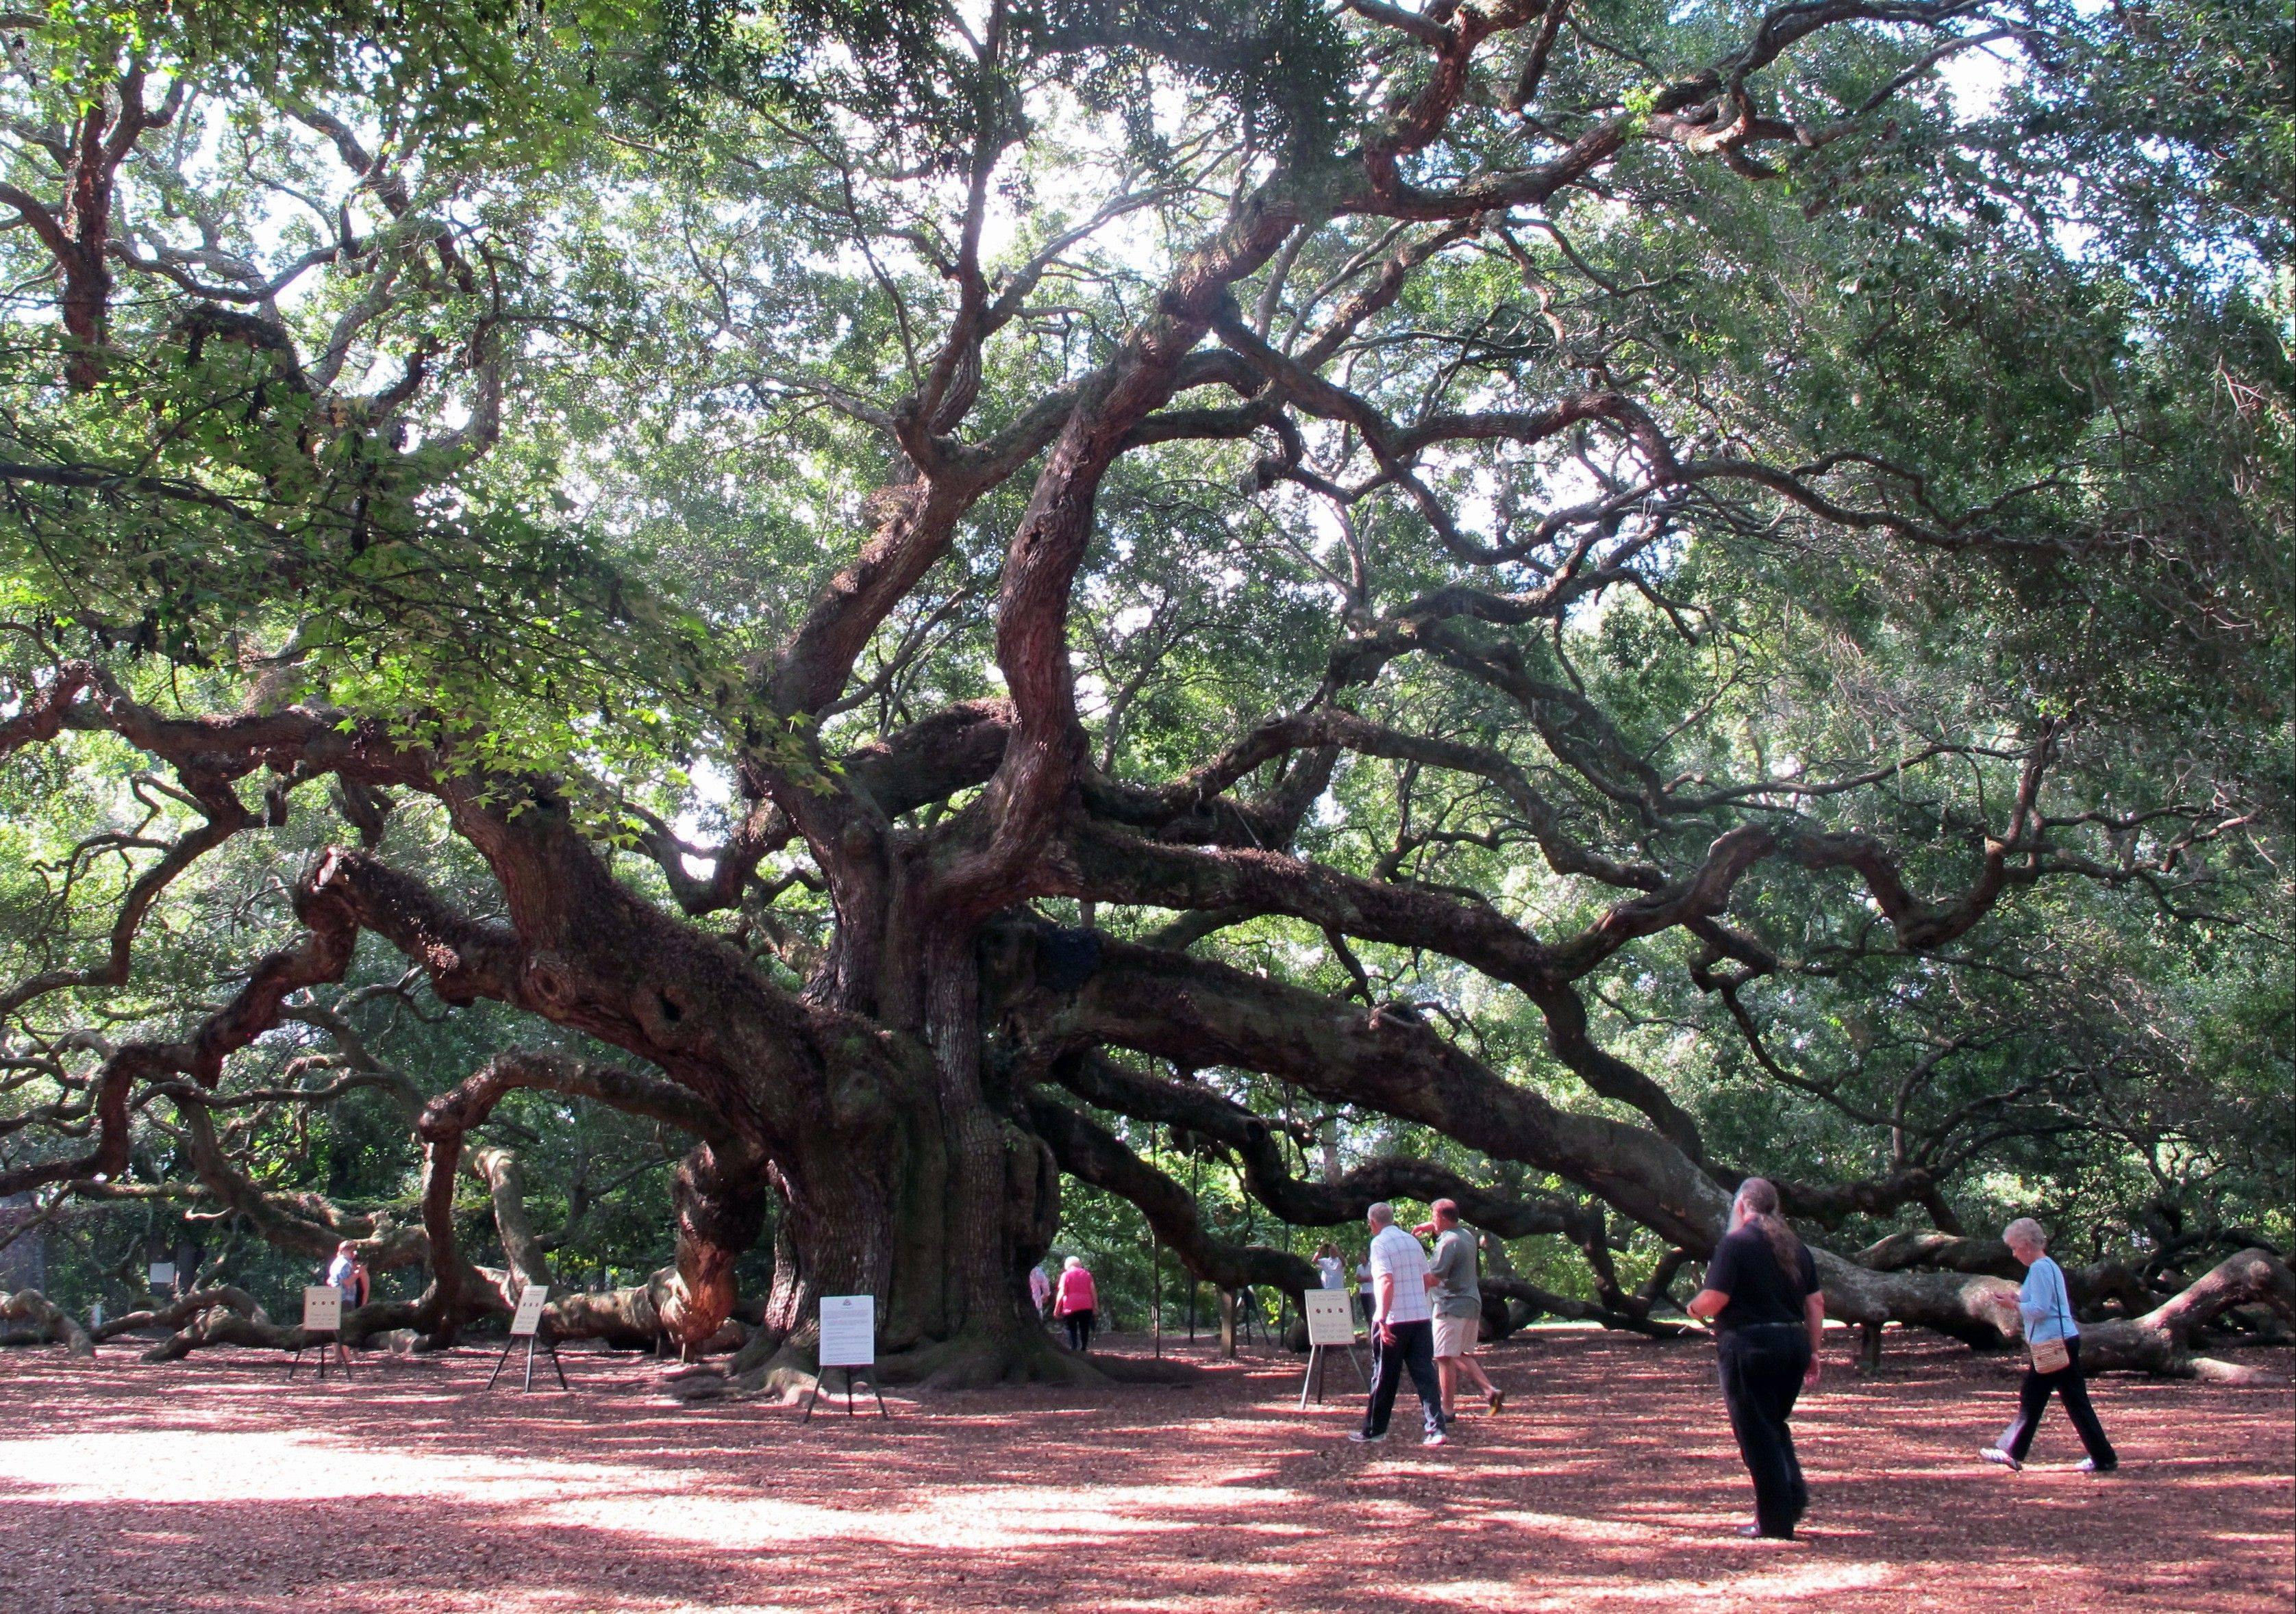 Visitors flock to the Angel Oak on Johns Island near Charleston, S.C. The tree, a landmark in the South Carolina Lowcountry, is thought to be as many as 500 years old.